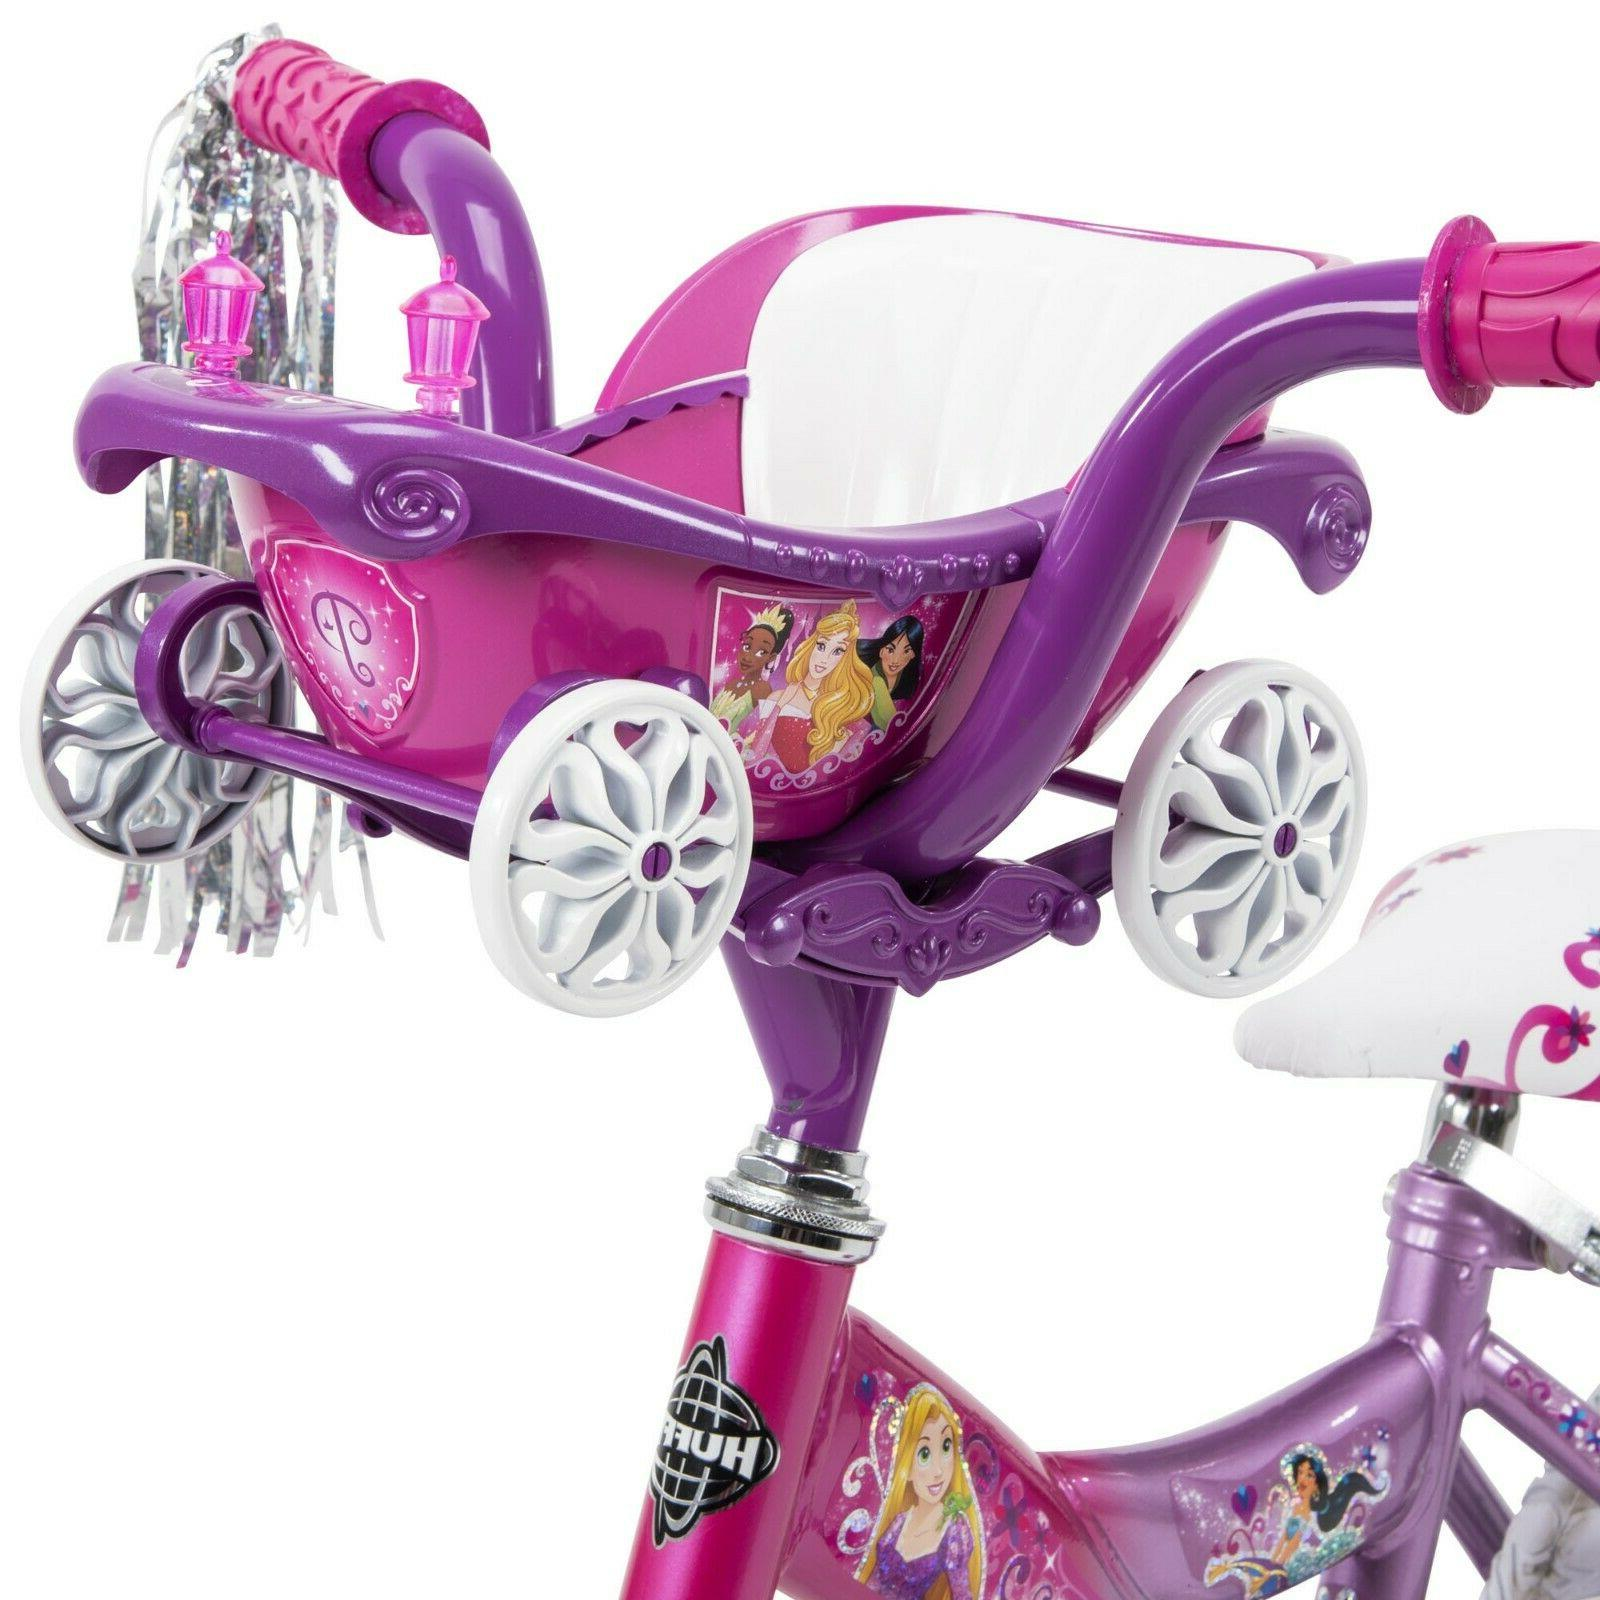 Huffy Princess Bike 12 inch, with